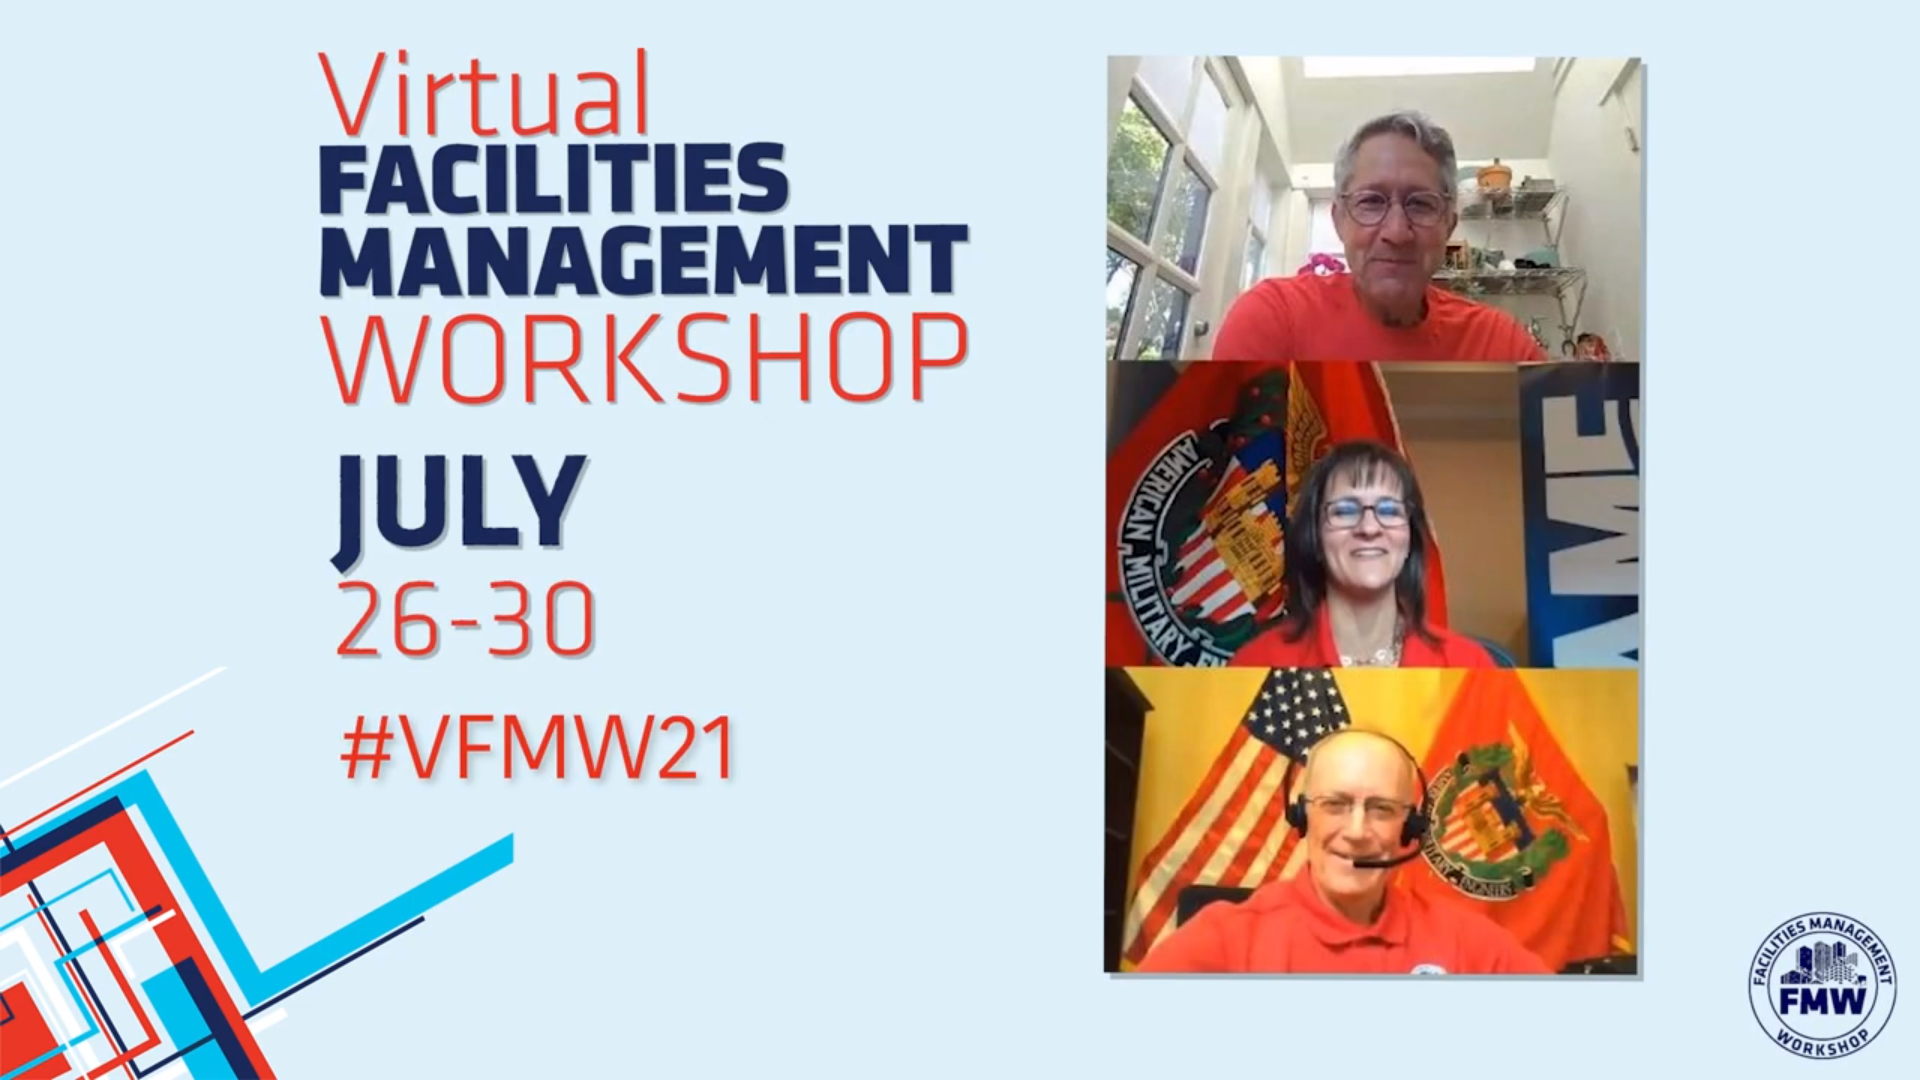 <p><strong>You're Invited to the Virtual Facilities Management Workshop 2021</strong></p>